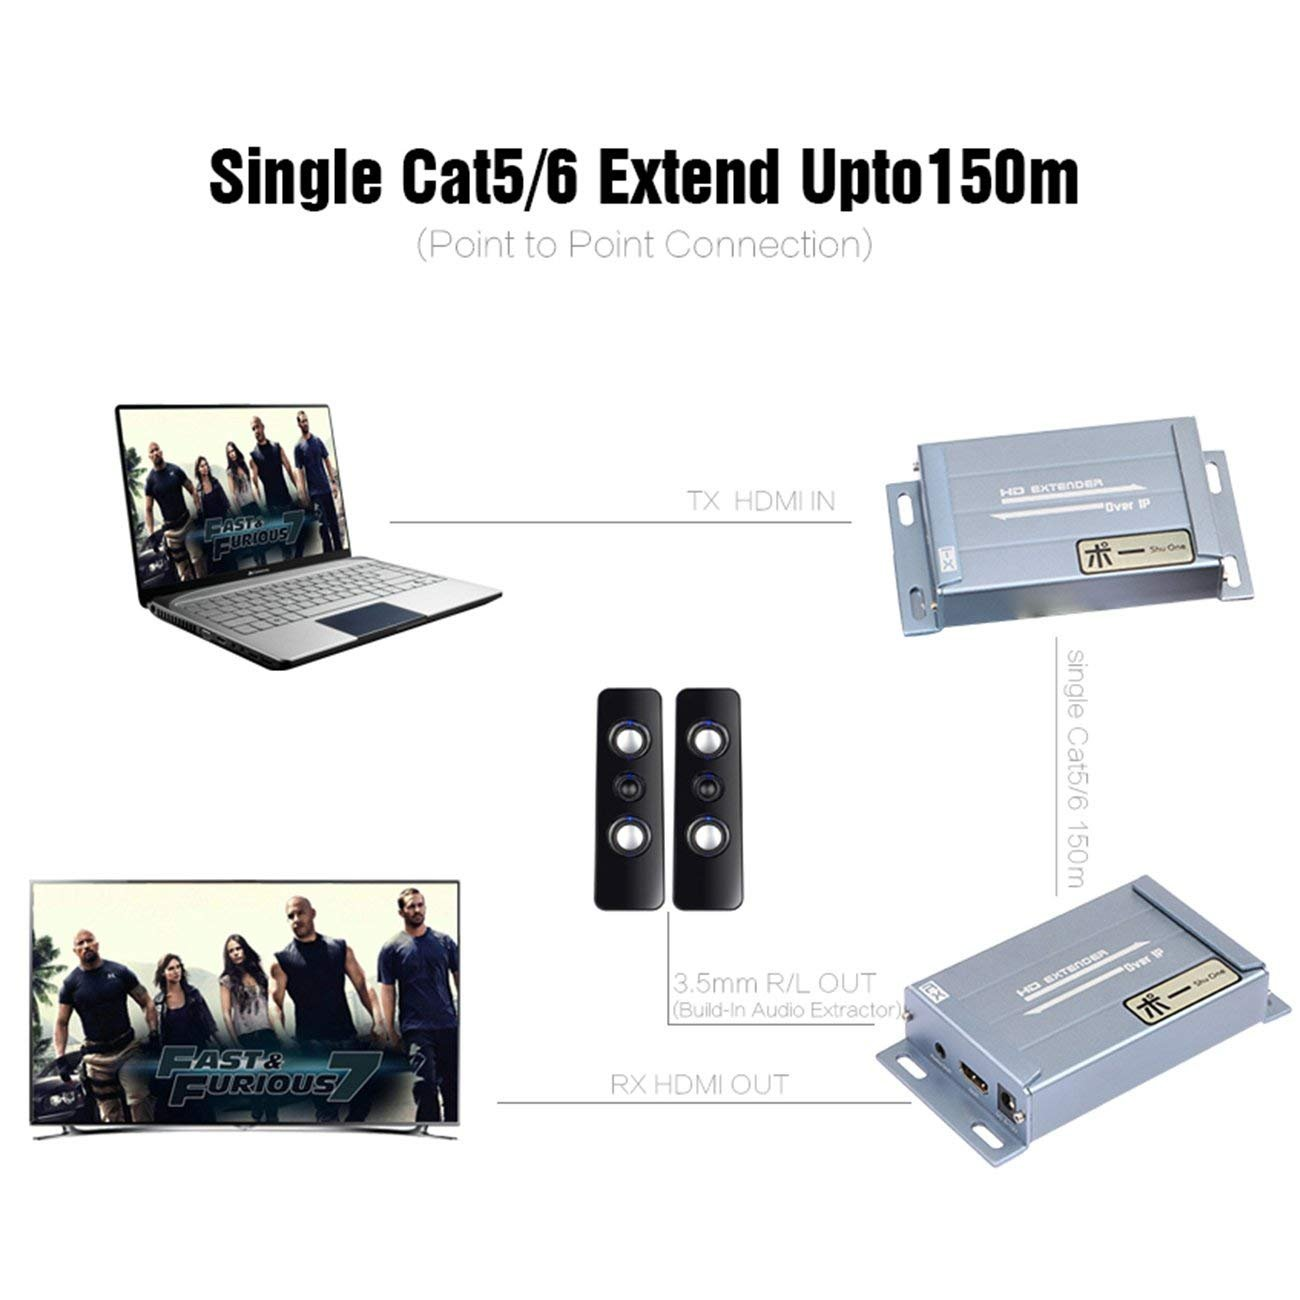 1080P 394ft HDMI Extender Over TCP/IP with Audio Extractor Via Rj45 Cat5 Cat5e Cat6 Supports Sky HD Box Laptop PC DVD STB PS4, (Transmitter+Receiver) by ShuOne (Image #3)